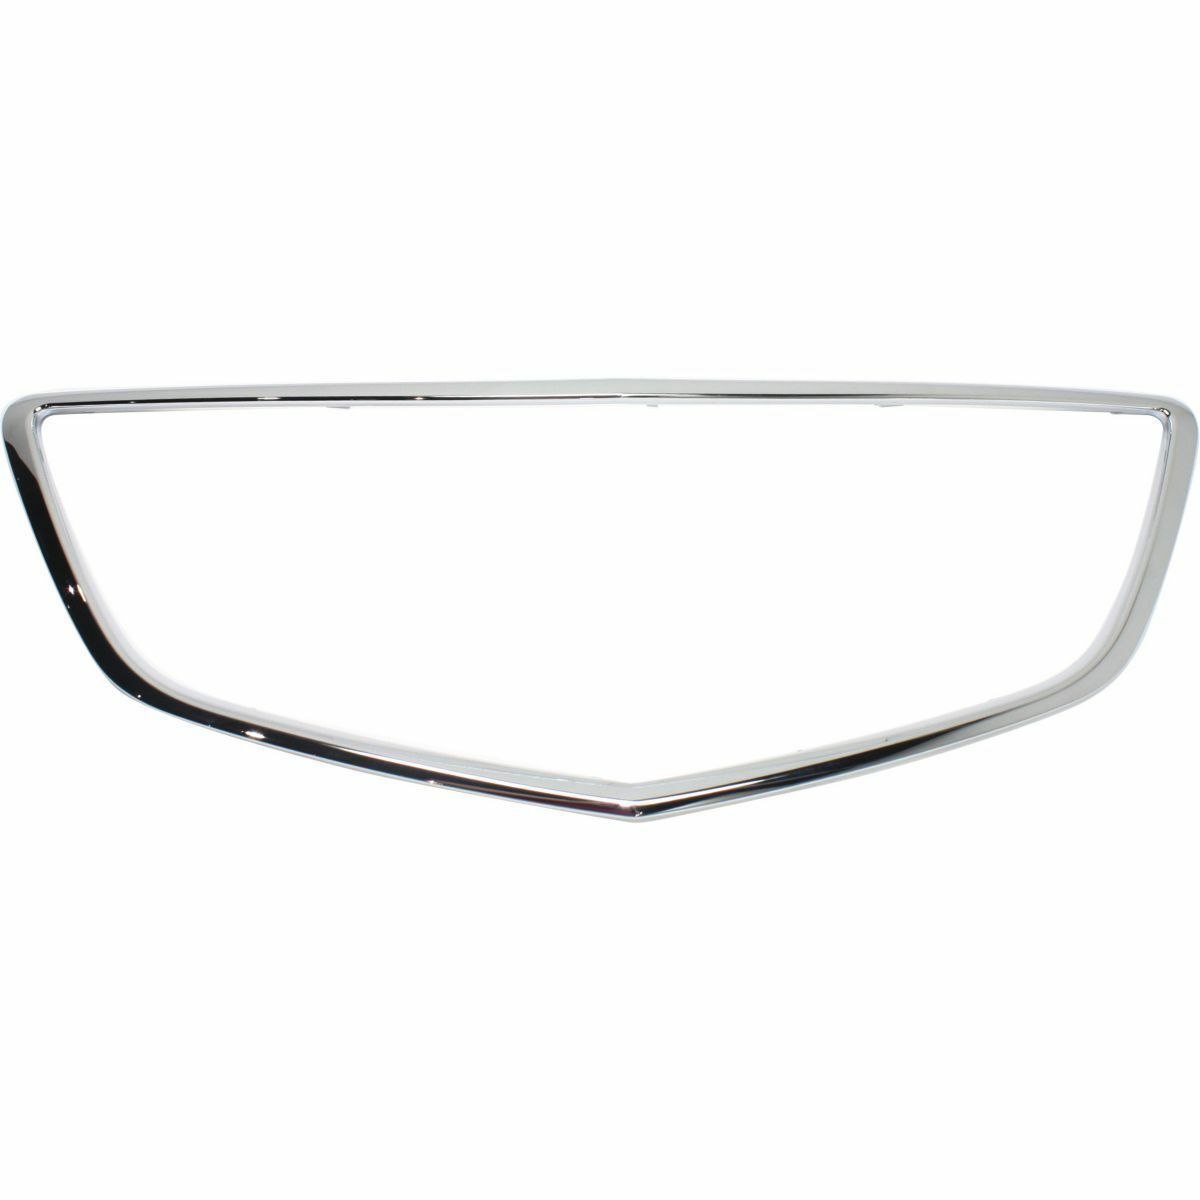 FRT GRILLE SHELL CHROME FOR 2014-2016 ACURA MDX AC1202103